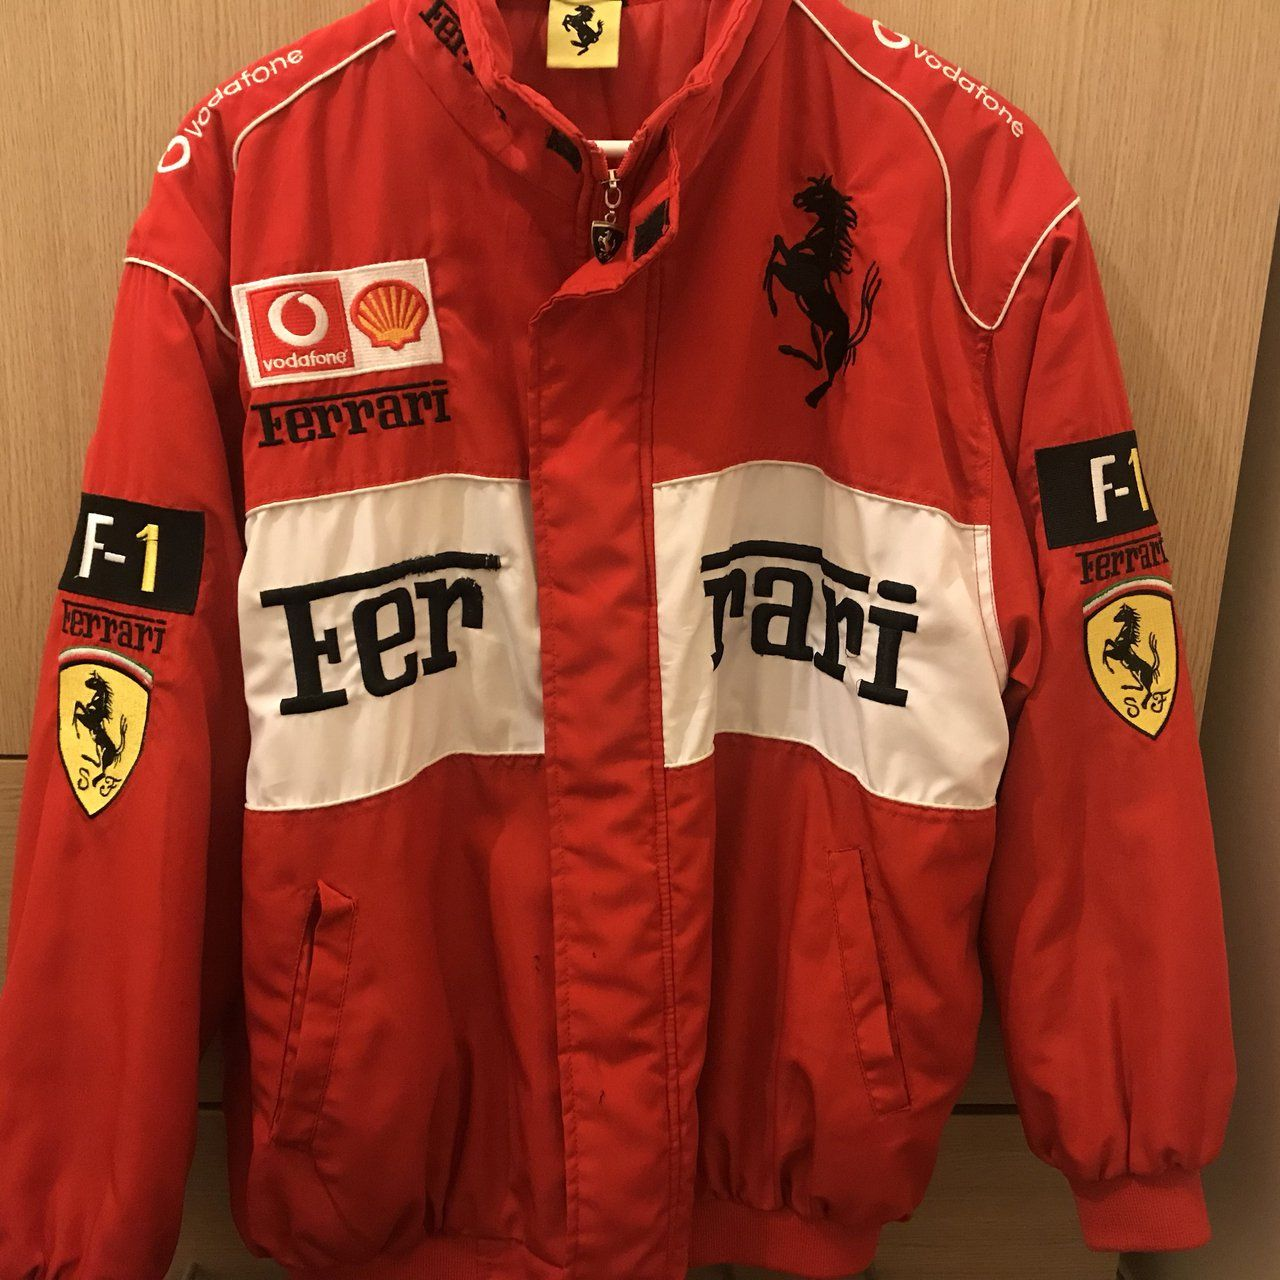 76a9b62fcf Vintage Red Ferrari Jacket As seen on Lana Del Rey for live - Depop